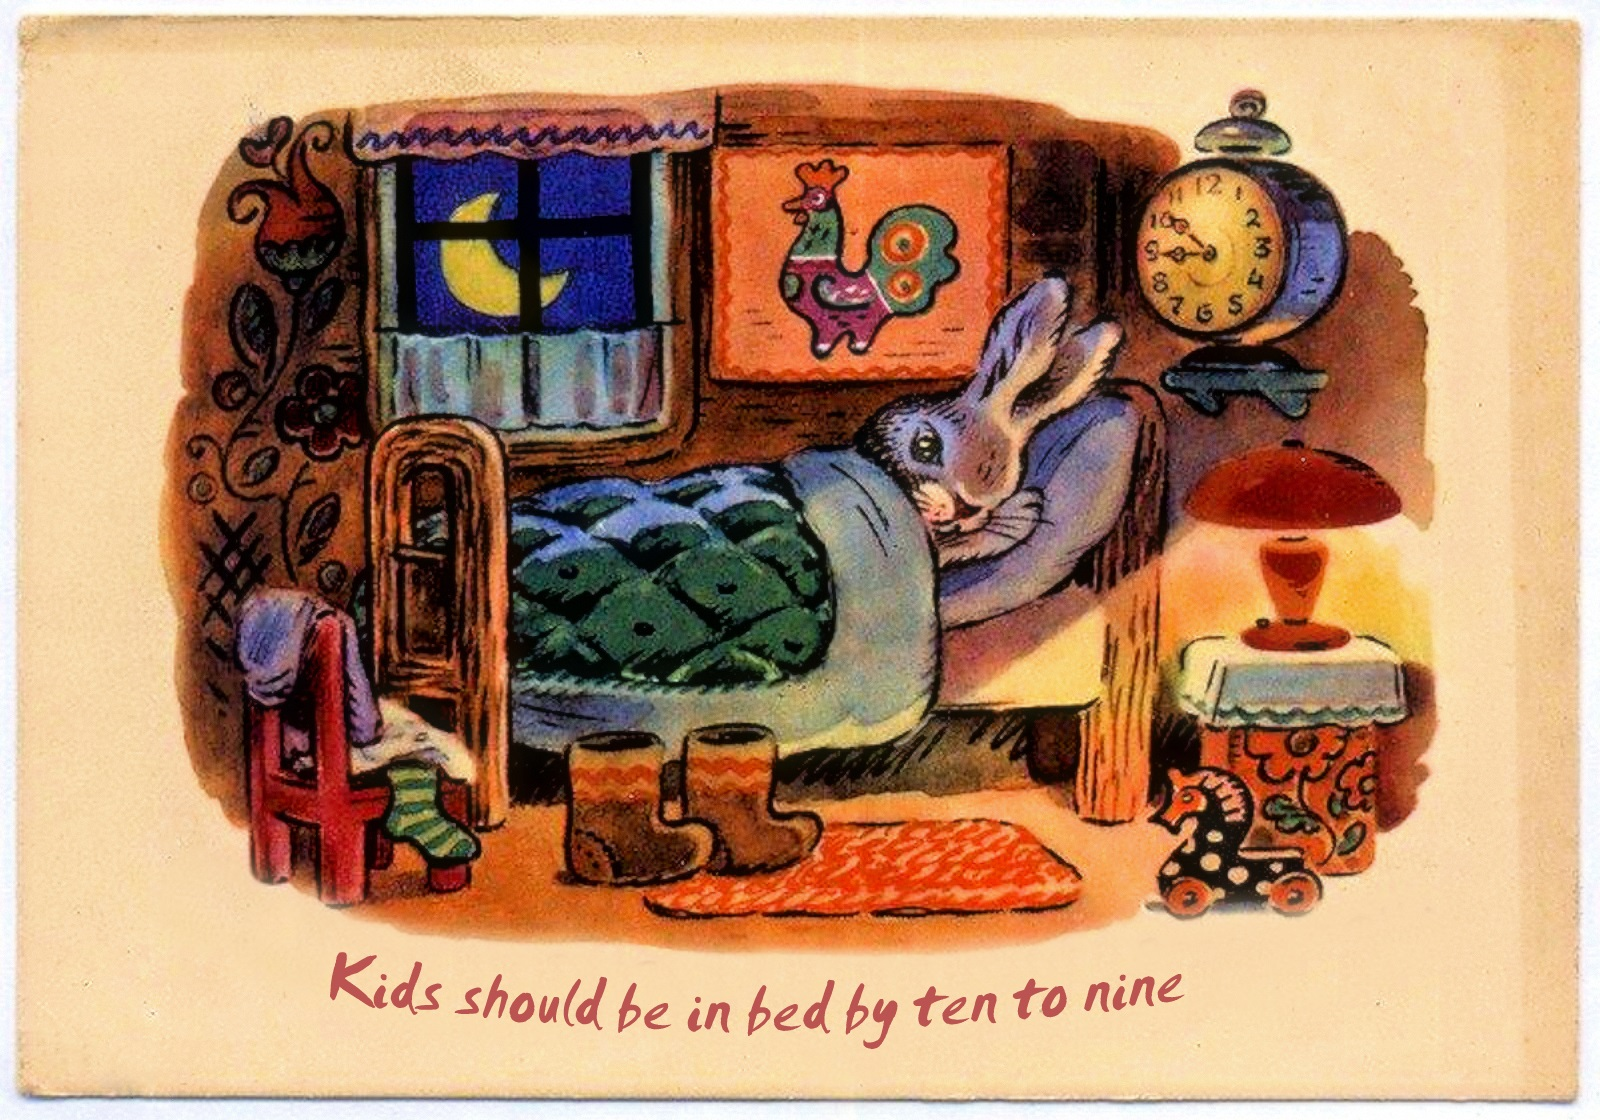 00 Konstantin Zotov. Kids Should Be in Bed by Ten to Nine. english. 1964